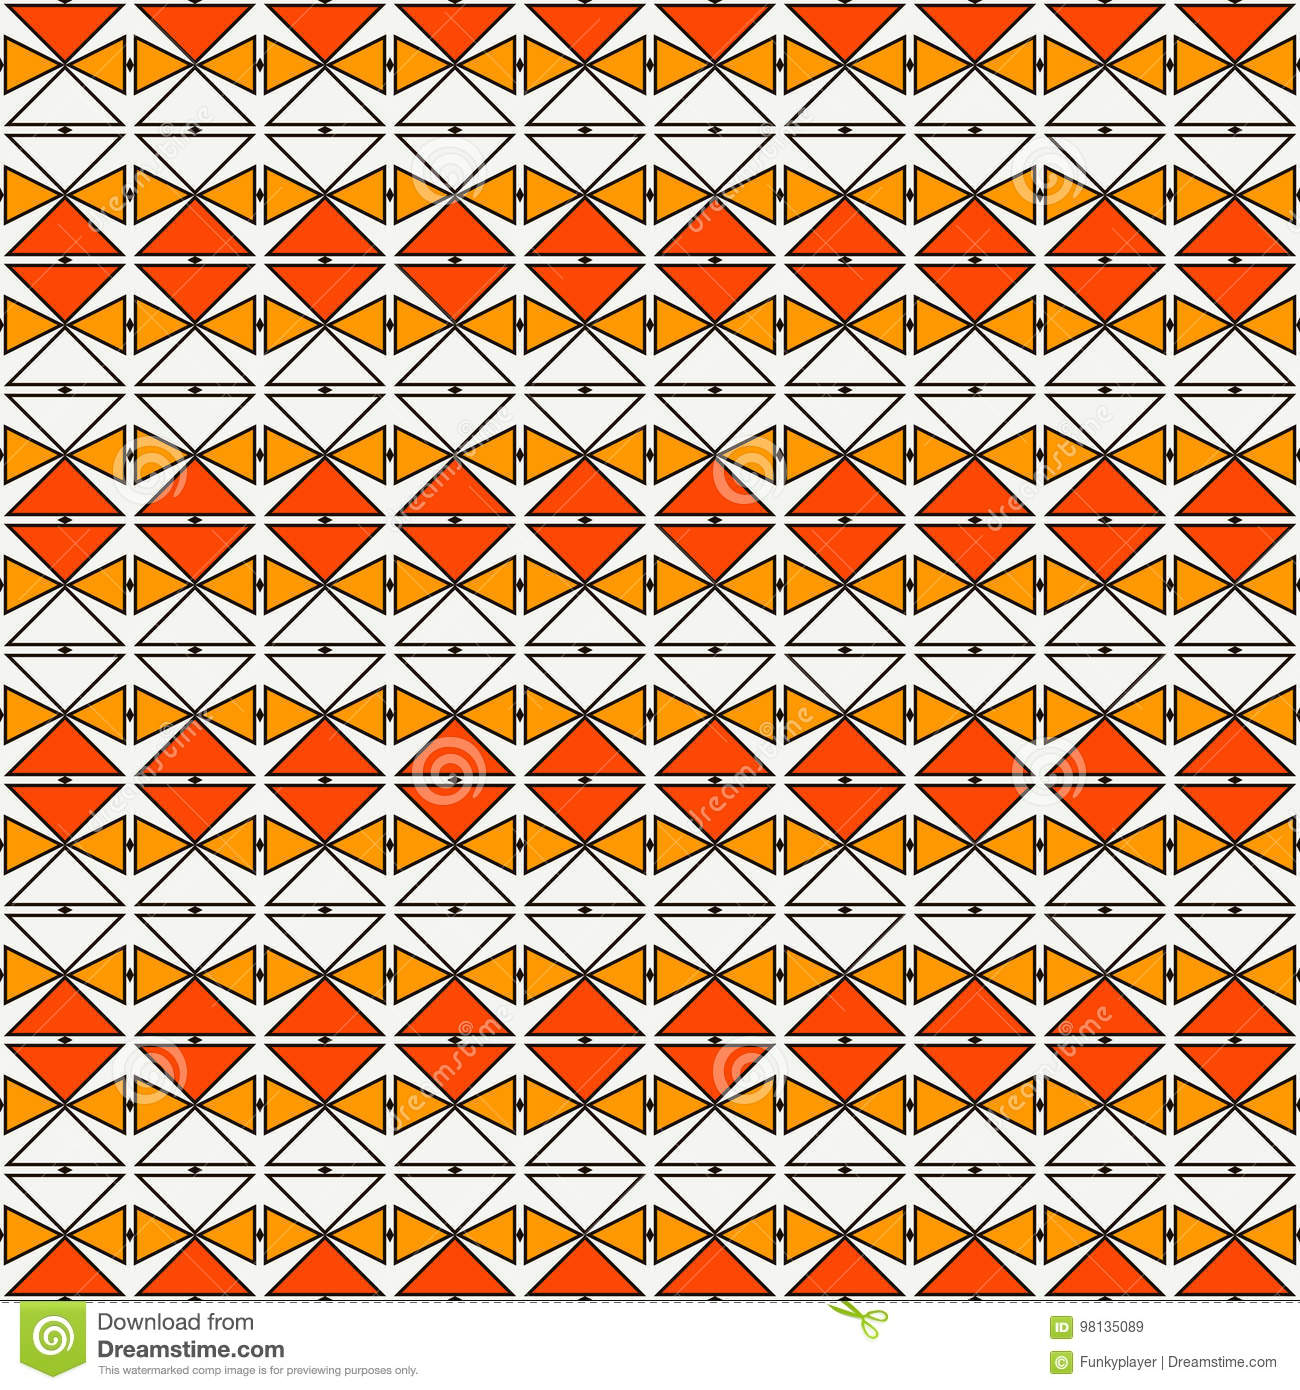 Repeated Diamonds And Lines Background African Style Ethnic